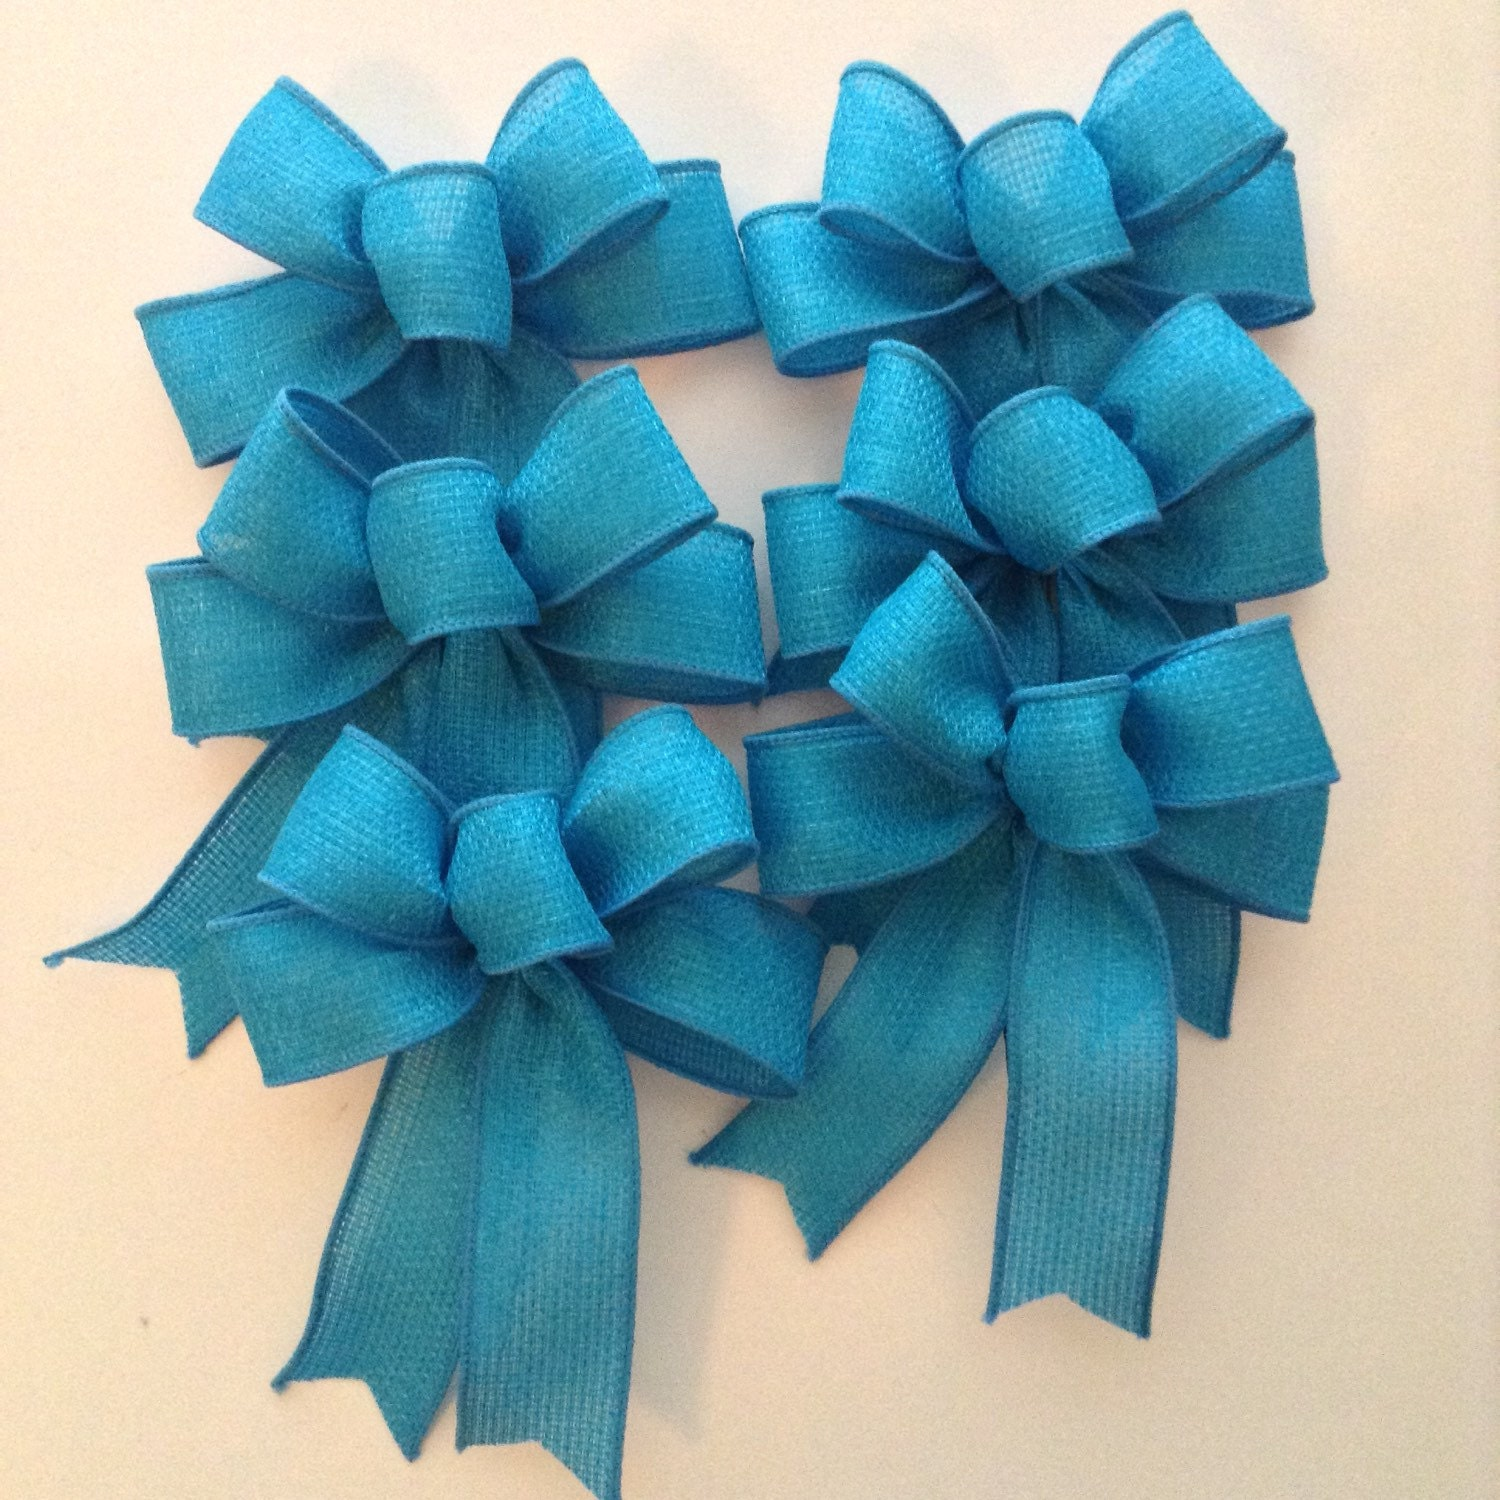 Turquoise Blue Decorative Bows / Christmas Tree Bows / Small